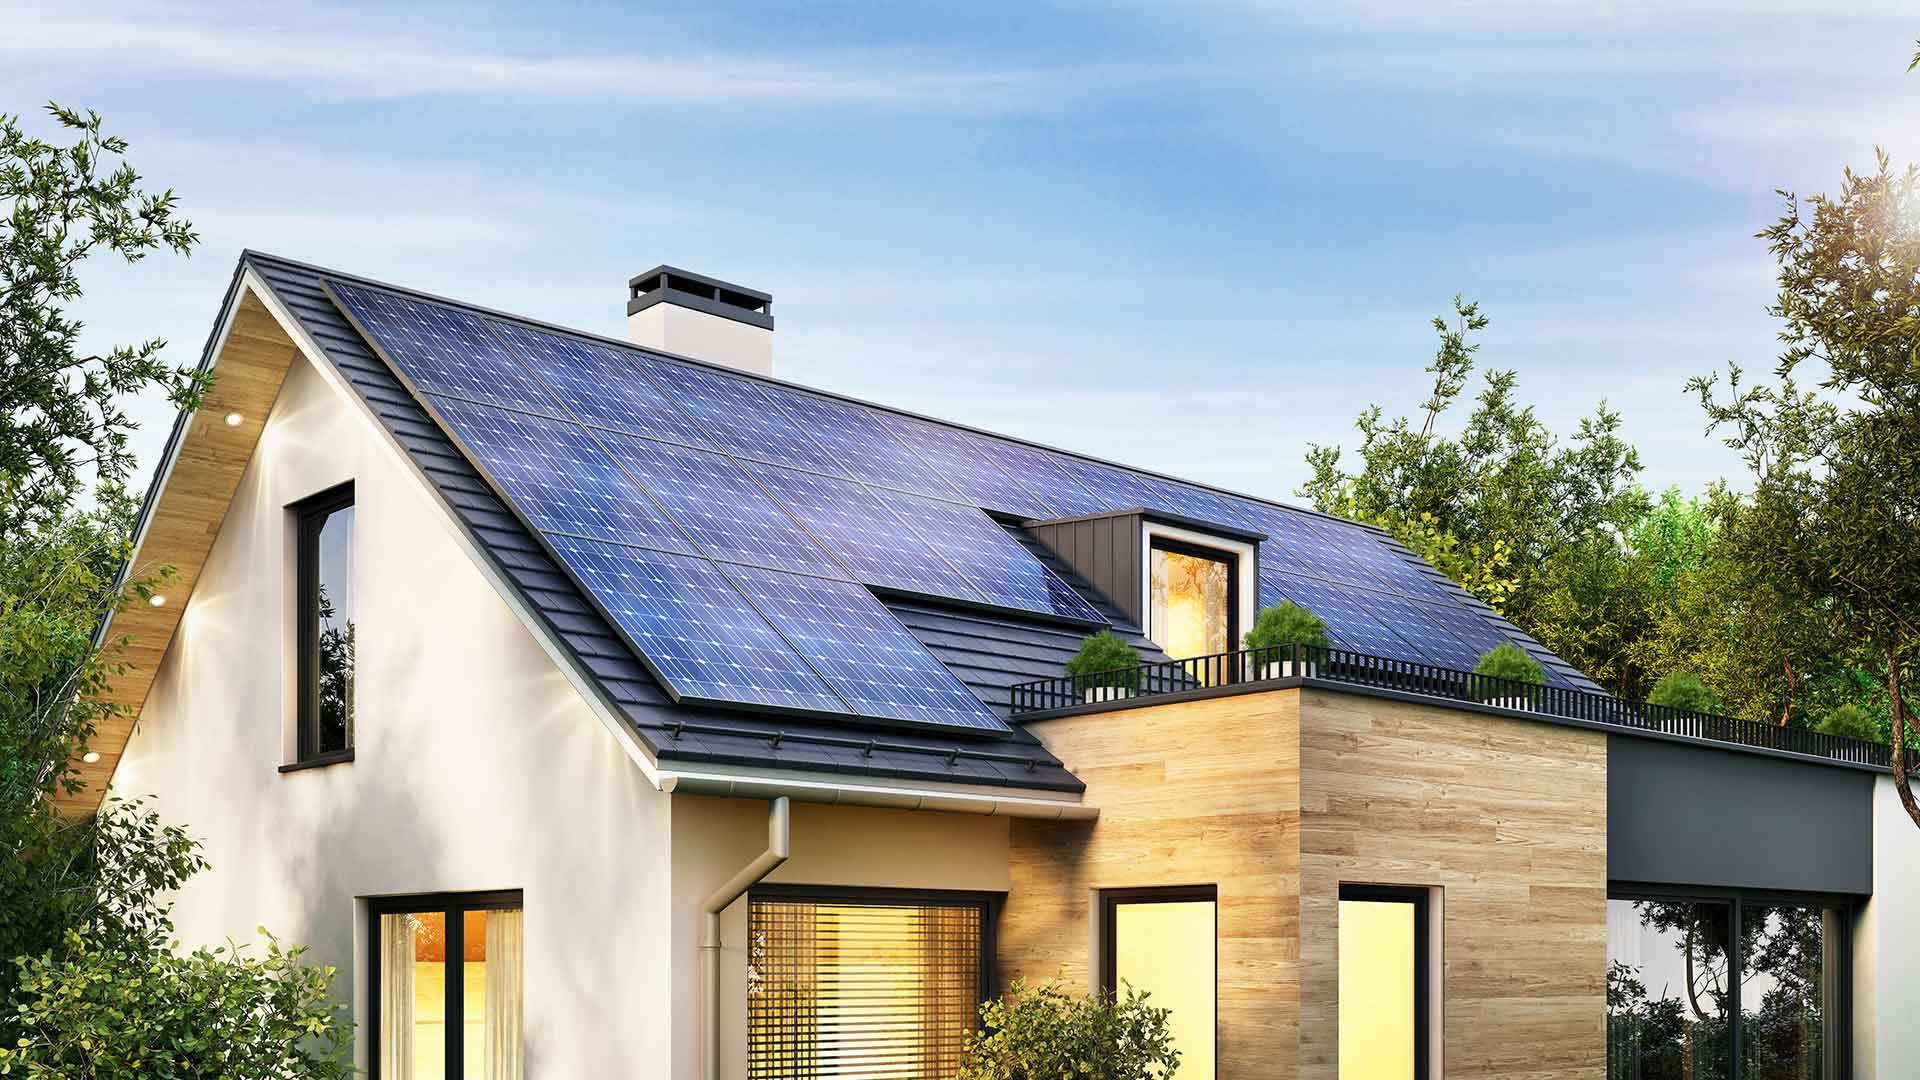 A beautiful house with a roof containing solar panels